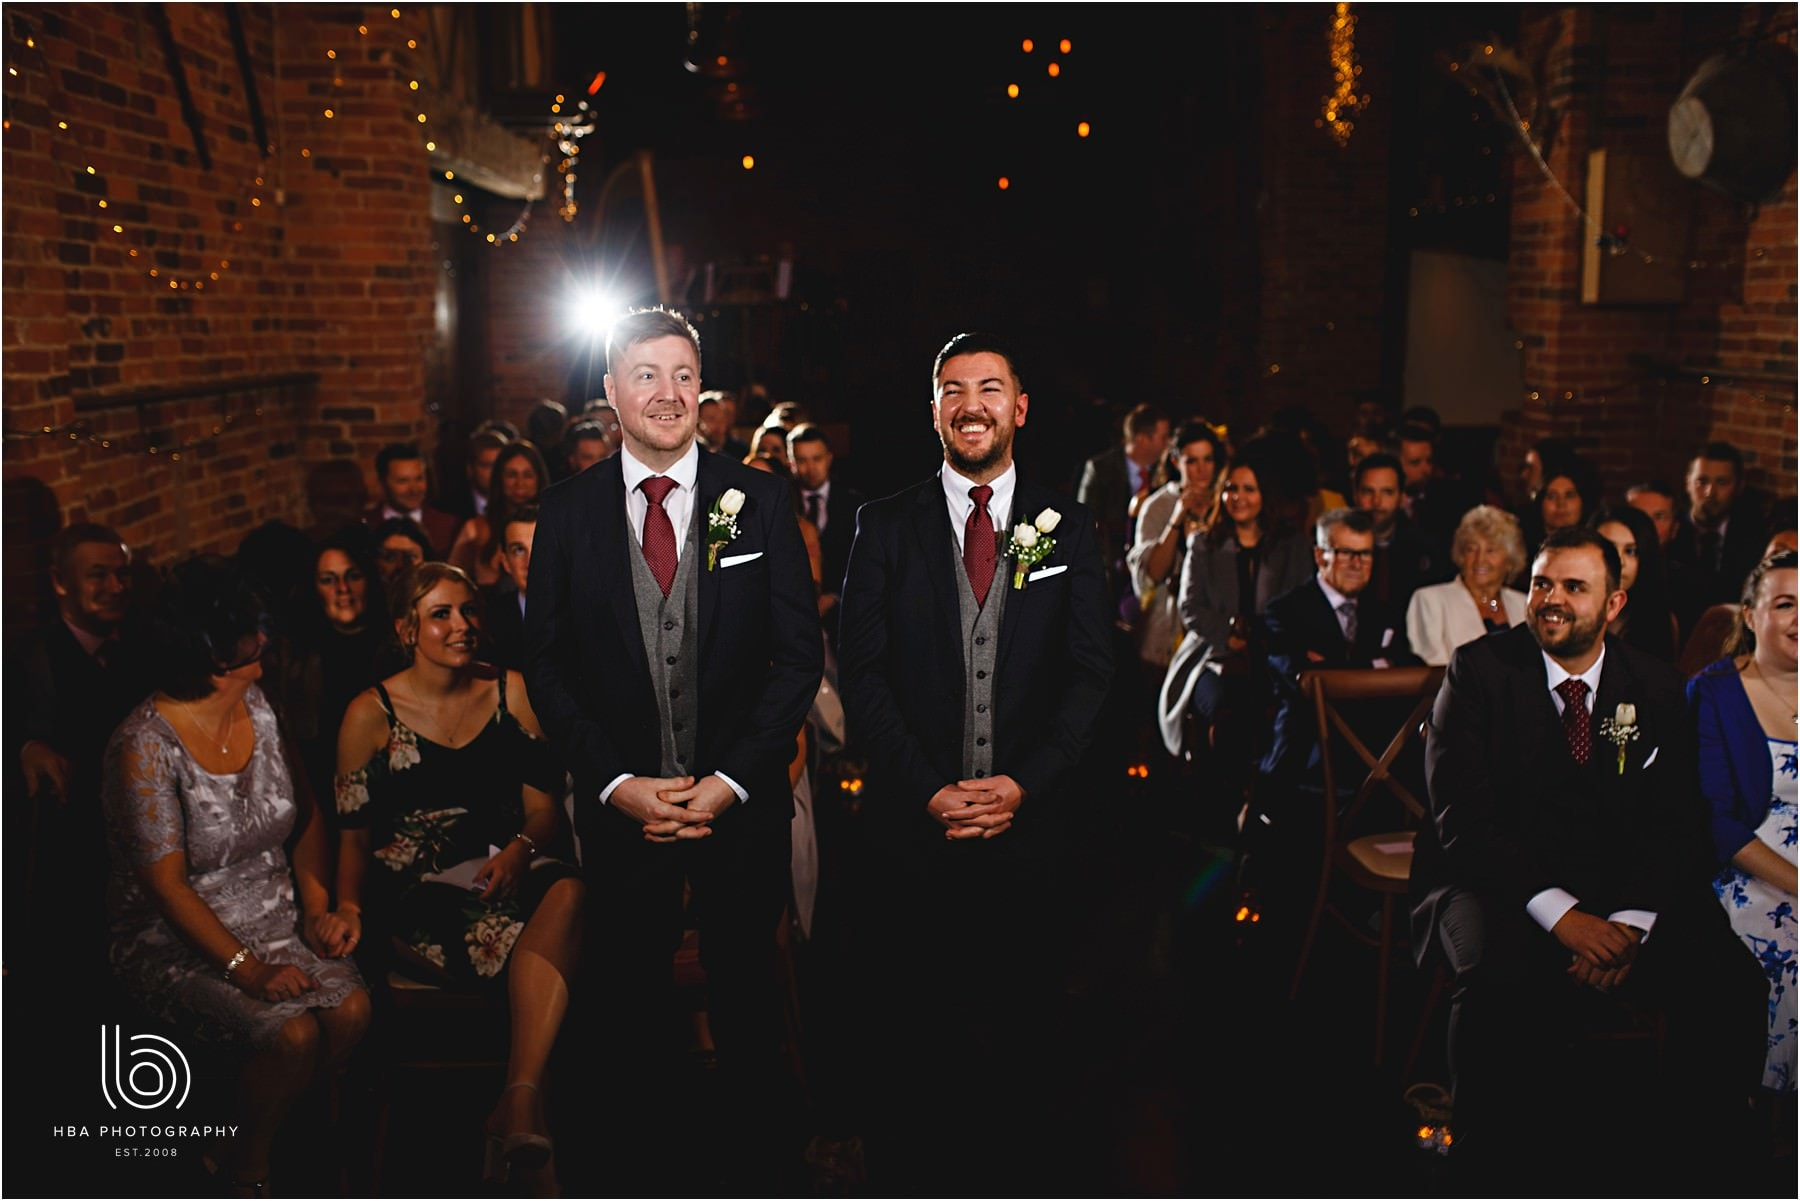 The groom and his best man waiting at the front of the aisle